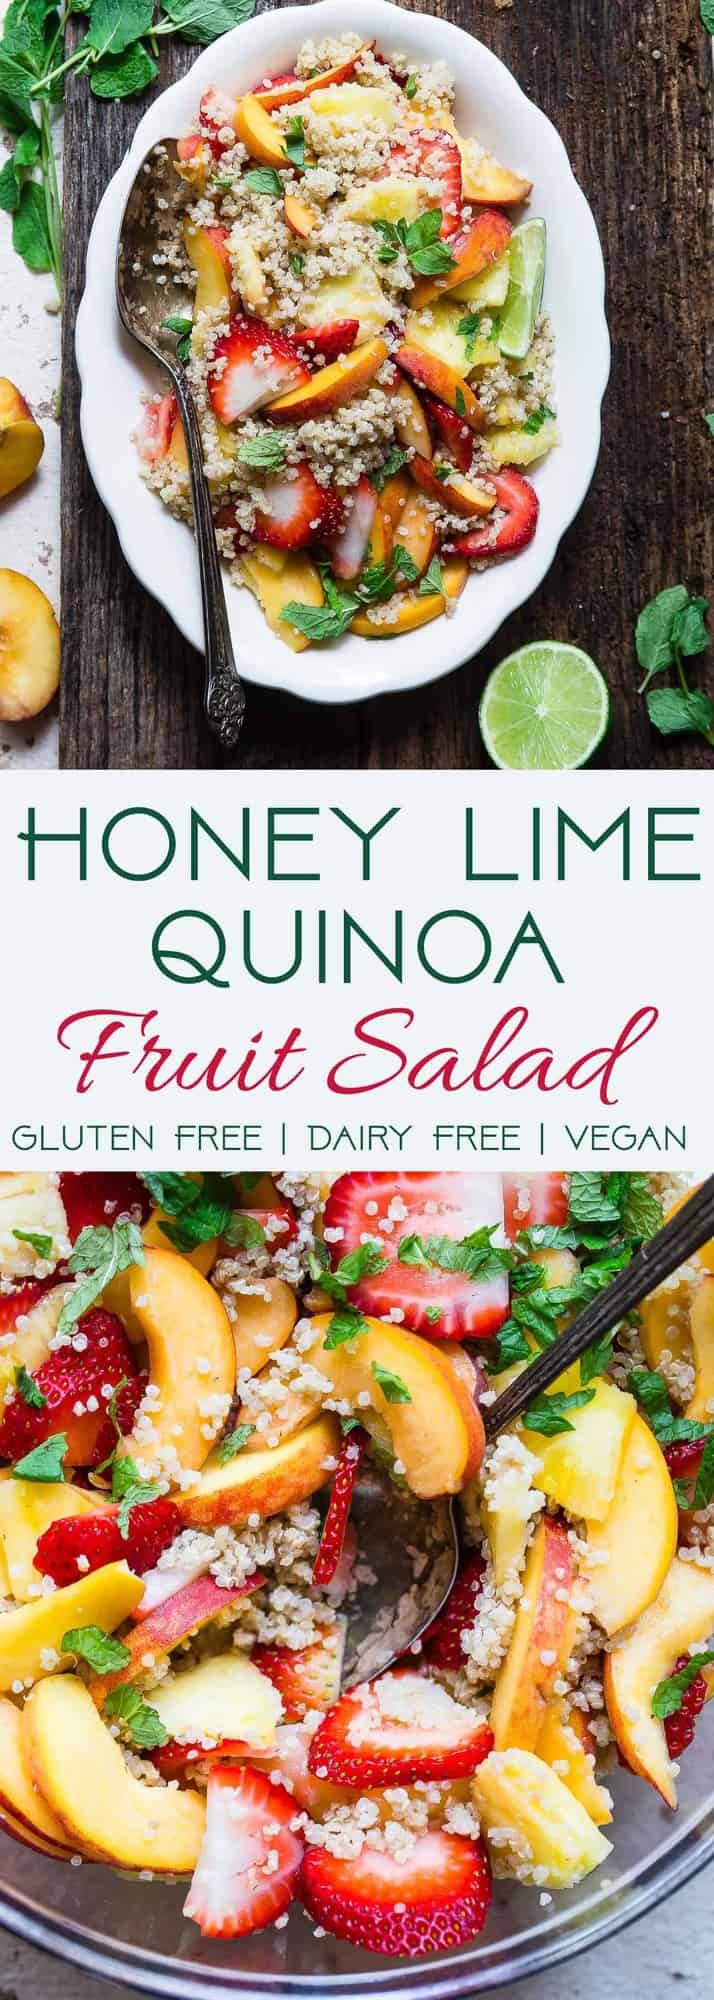 Honey Lime Quinoa Fruit Salad - This honey lime Coconut Milk Quinoa Fruit Salad is loaded with fresh, juicy fruit and a sweet and tangy dressing! The perfect healthy, gluten free and vegan side dish or brunch item for Summer! | #Foodfaithfitness | #Glutenfree #Vegan #Healthy #Dairyfree #Quinoa